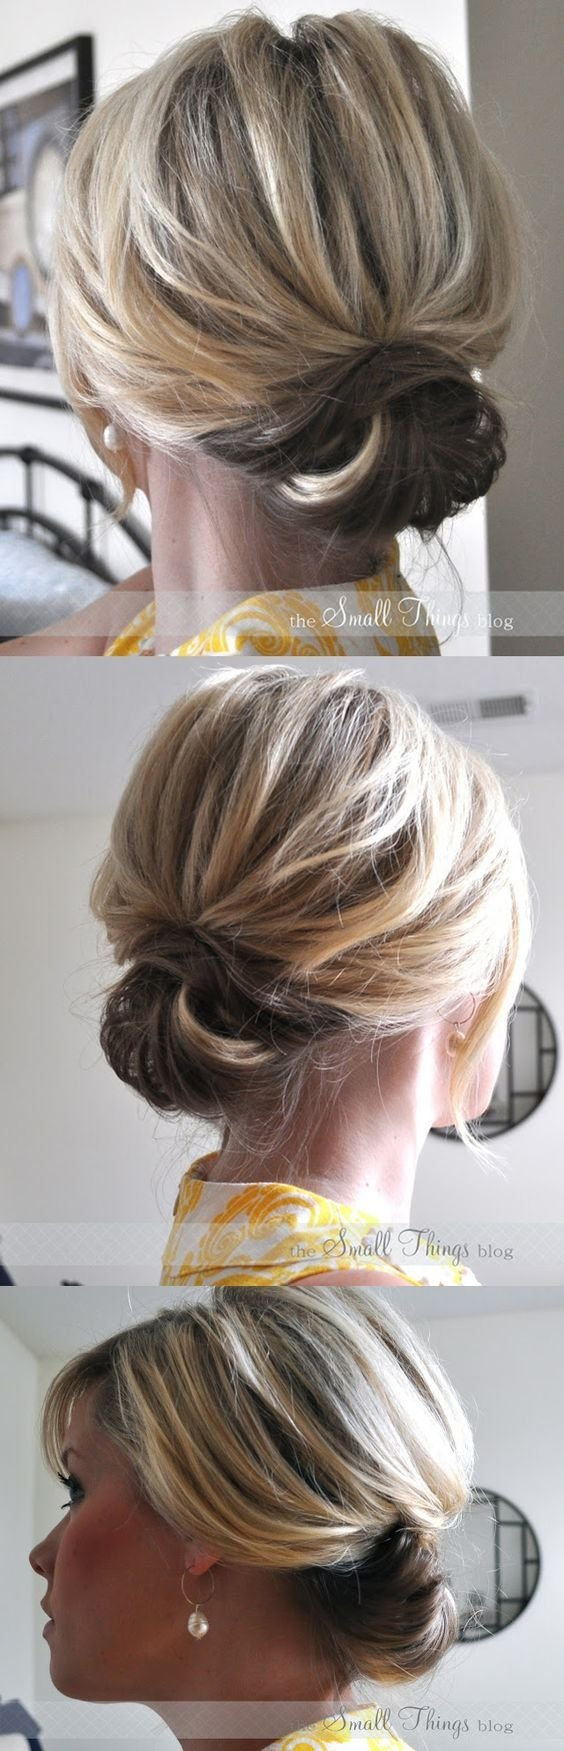 New Diy Hairstyle Chic Up Do For Short Hair Step By Step Video Tutorial ♥ Diy Hairstyles Ideas With Pictures